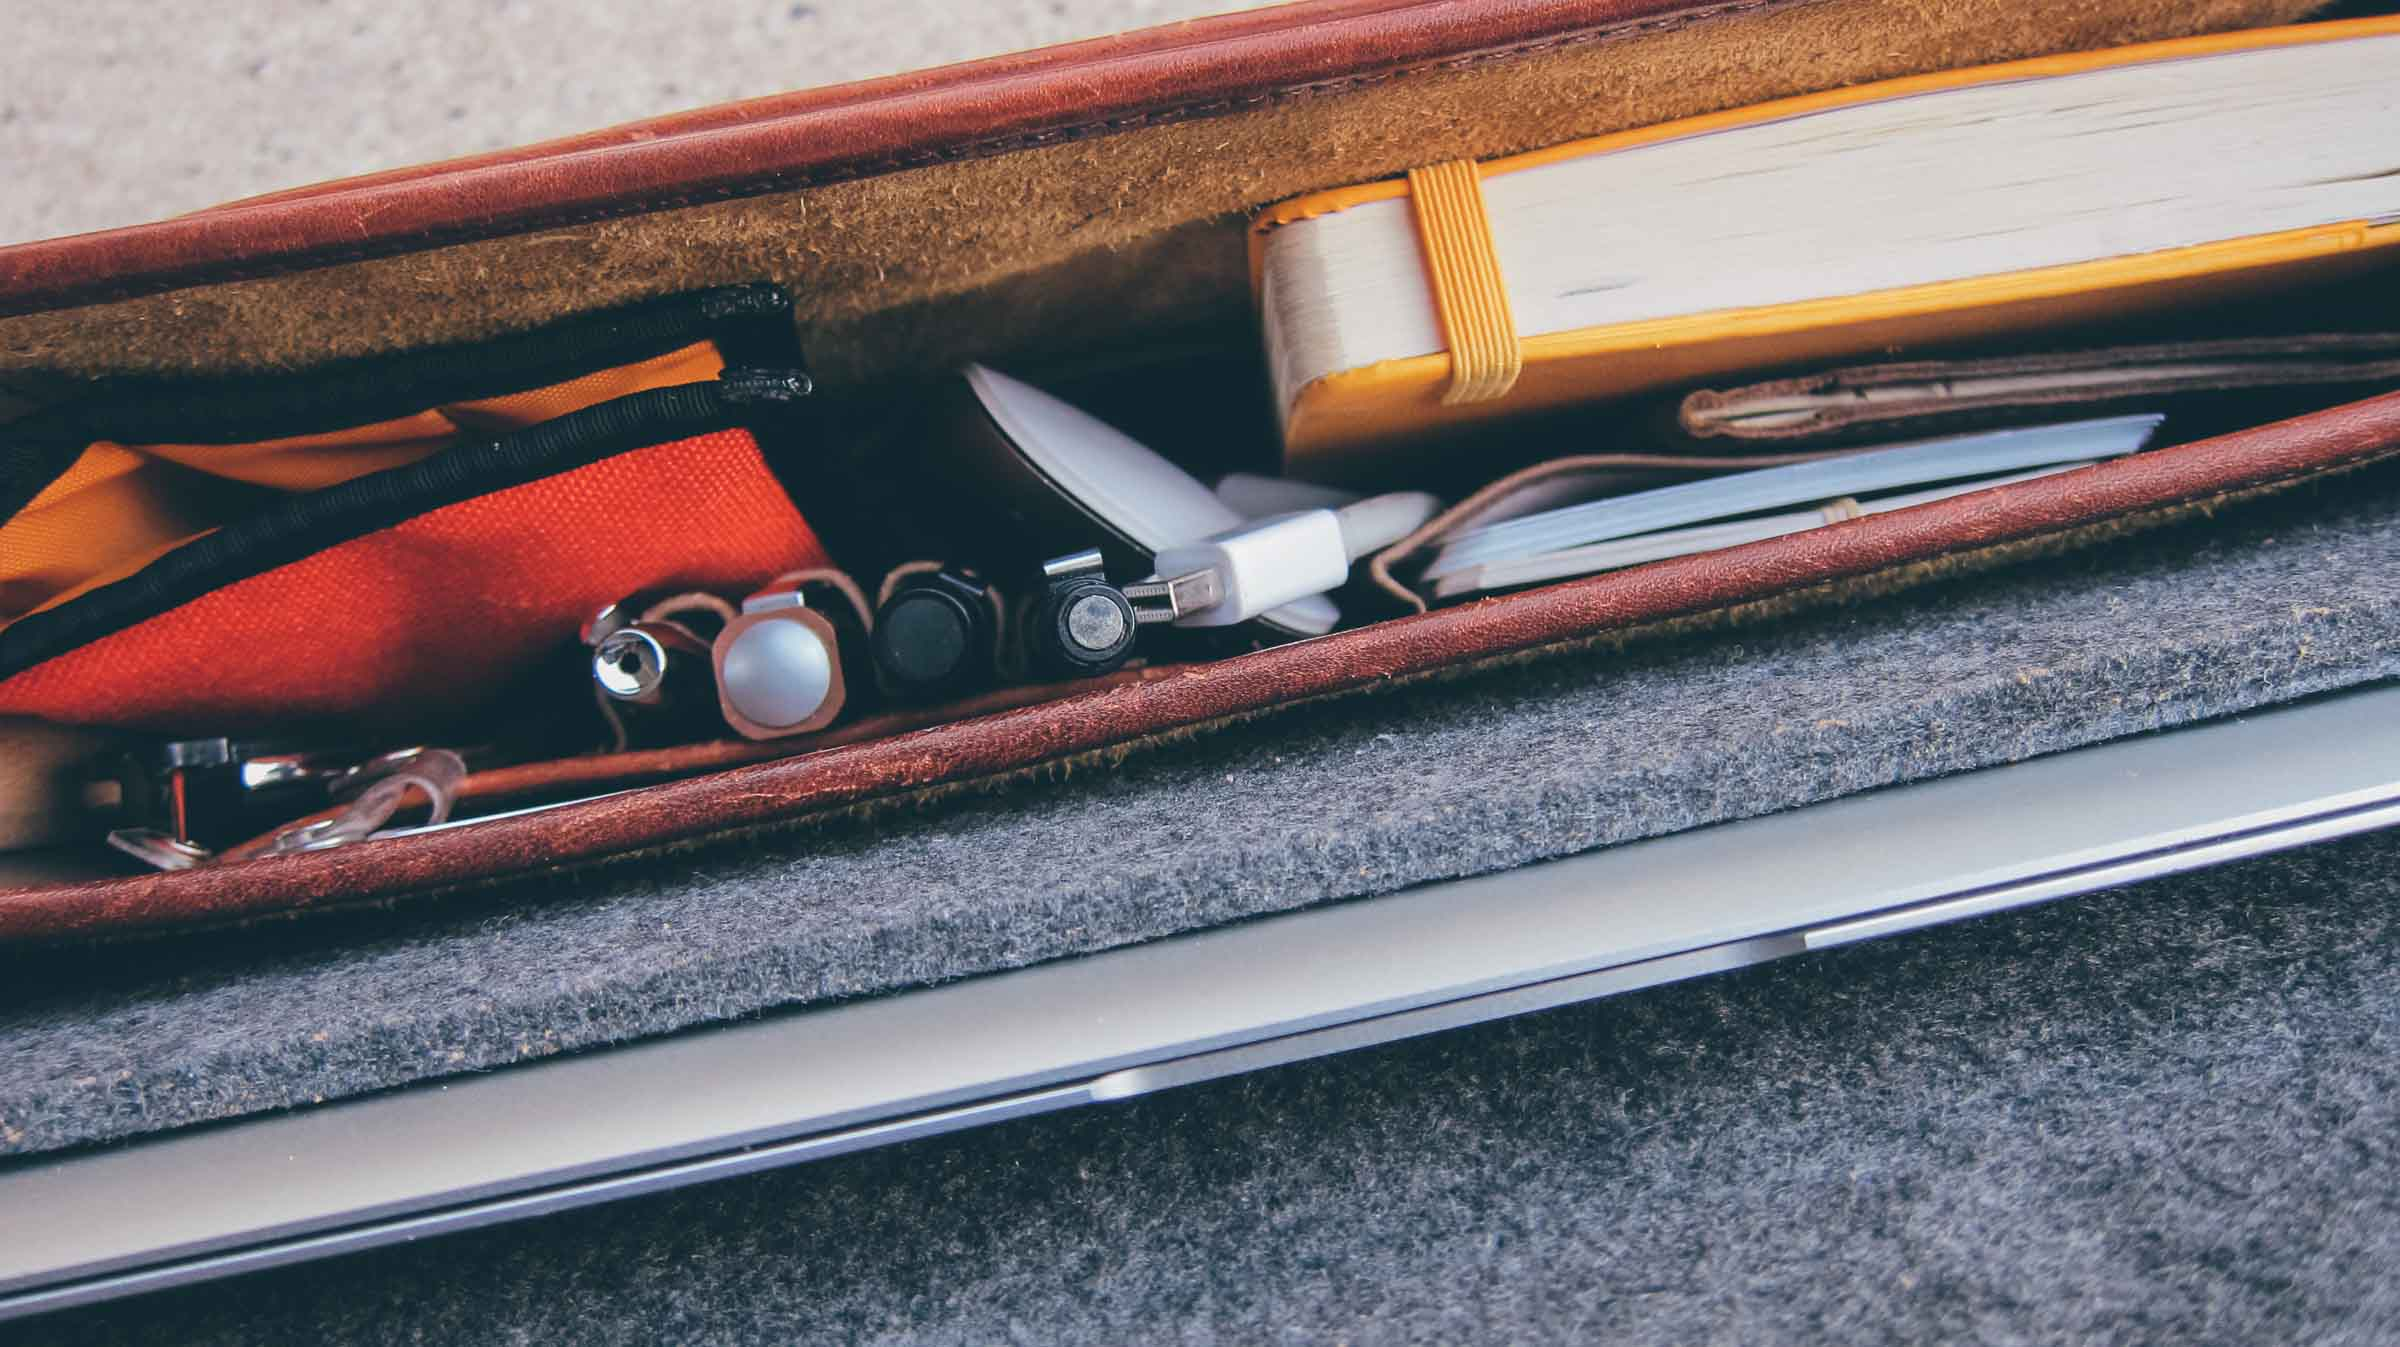 Mike Rohde's Everyday Carry Gear — Tools and Toys